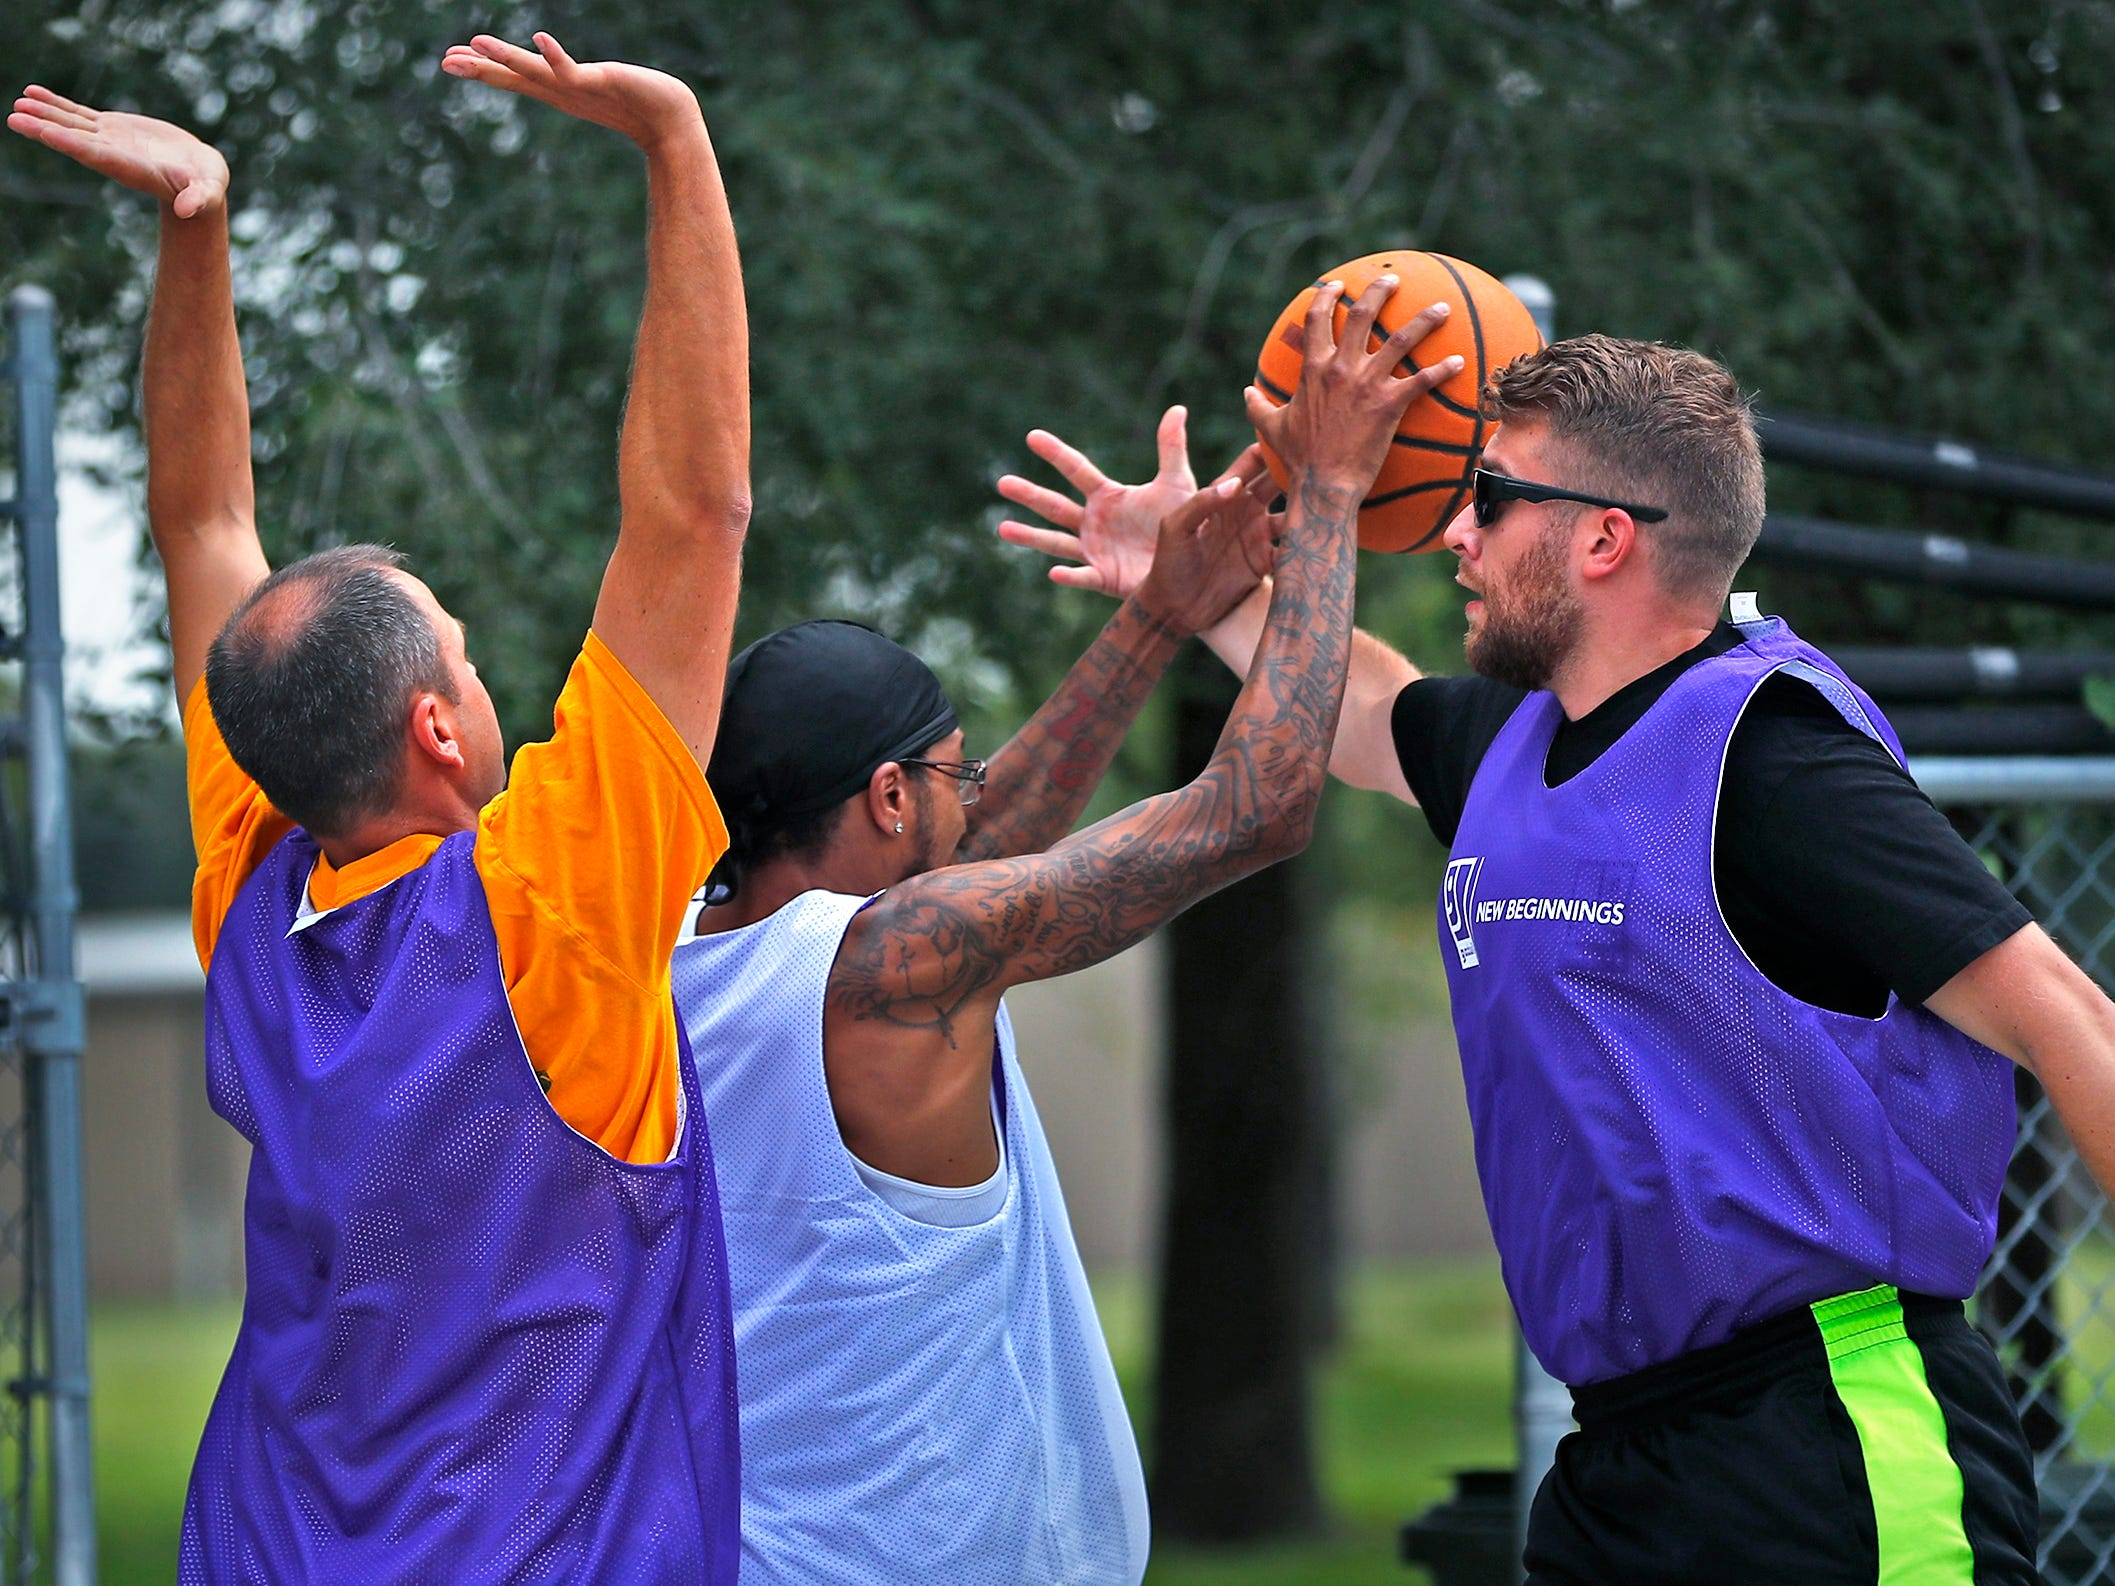 Eric Schlegel, Vice President for Goodwill Southern and Central Indiana Retail Division, from left, Michael Patrick, New Beginnings participant, and Austin Paschal, with Marion County Probations, battle during a basketball game at Goodwill Commercial Services, Wednesday, Sept. 19, 2018.  Goodwill Industries of Central Indiana's New Beginnings hosted the 3-on-3 basketball tournament bringing together participants in New Beginnings, a six-month re-entry program for ex-offenders that works on job and life skills, with representatives from Goodwill, IMPD, the Mayor's office, Marion County Probation department and other services.  The goal is to celebrate the New Beginnings program while breaking down re-entry barriers through basketball.